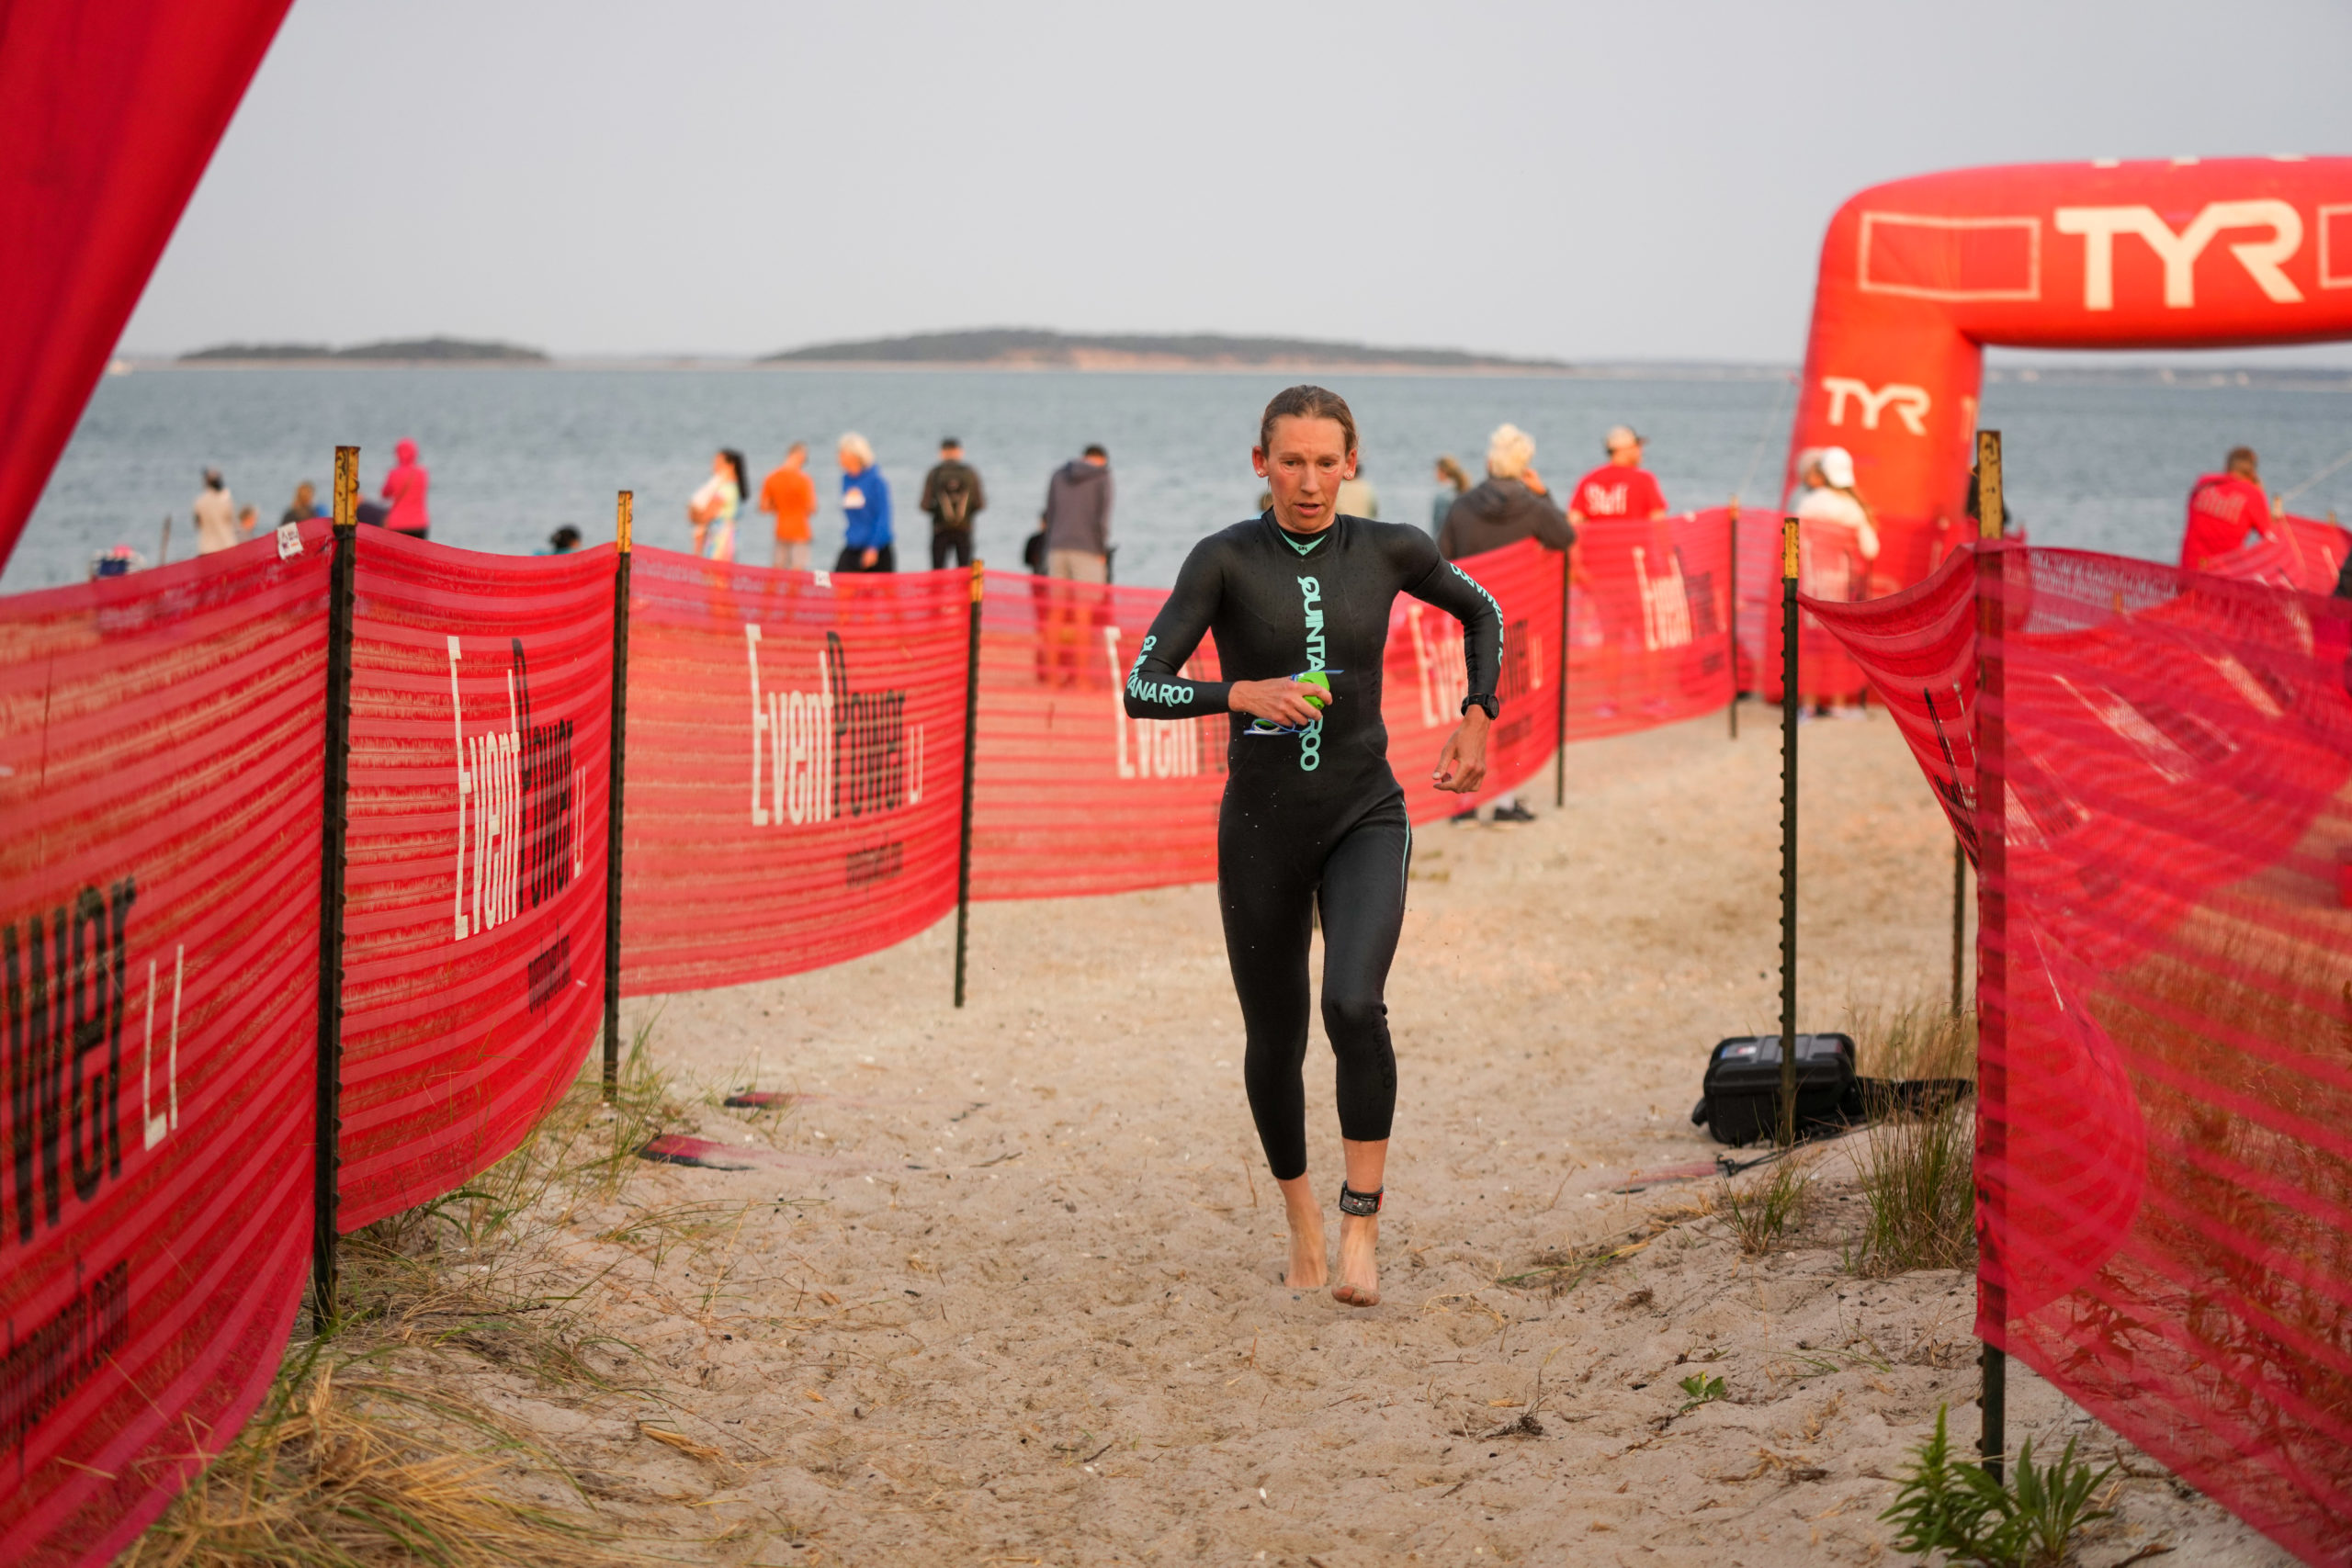 A triathlete transitions from the water to the bike area.